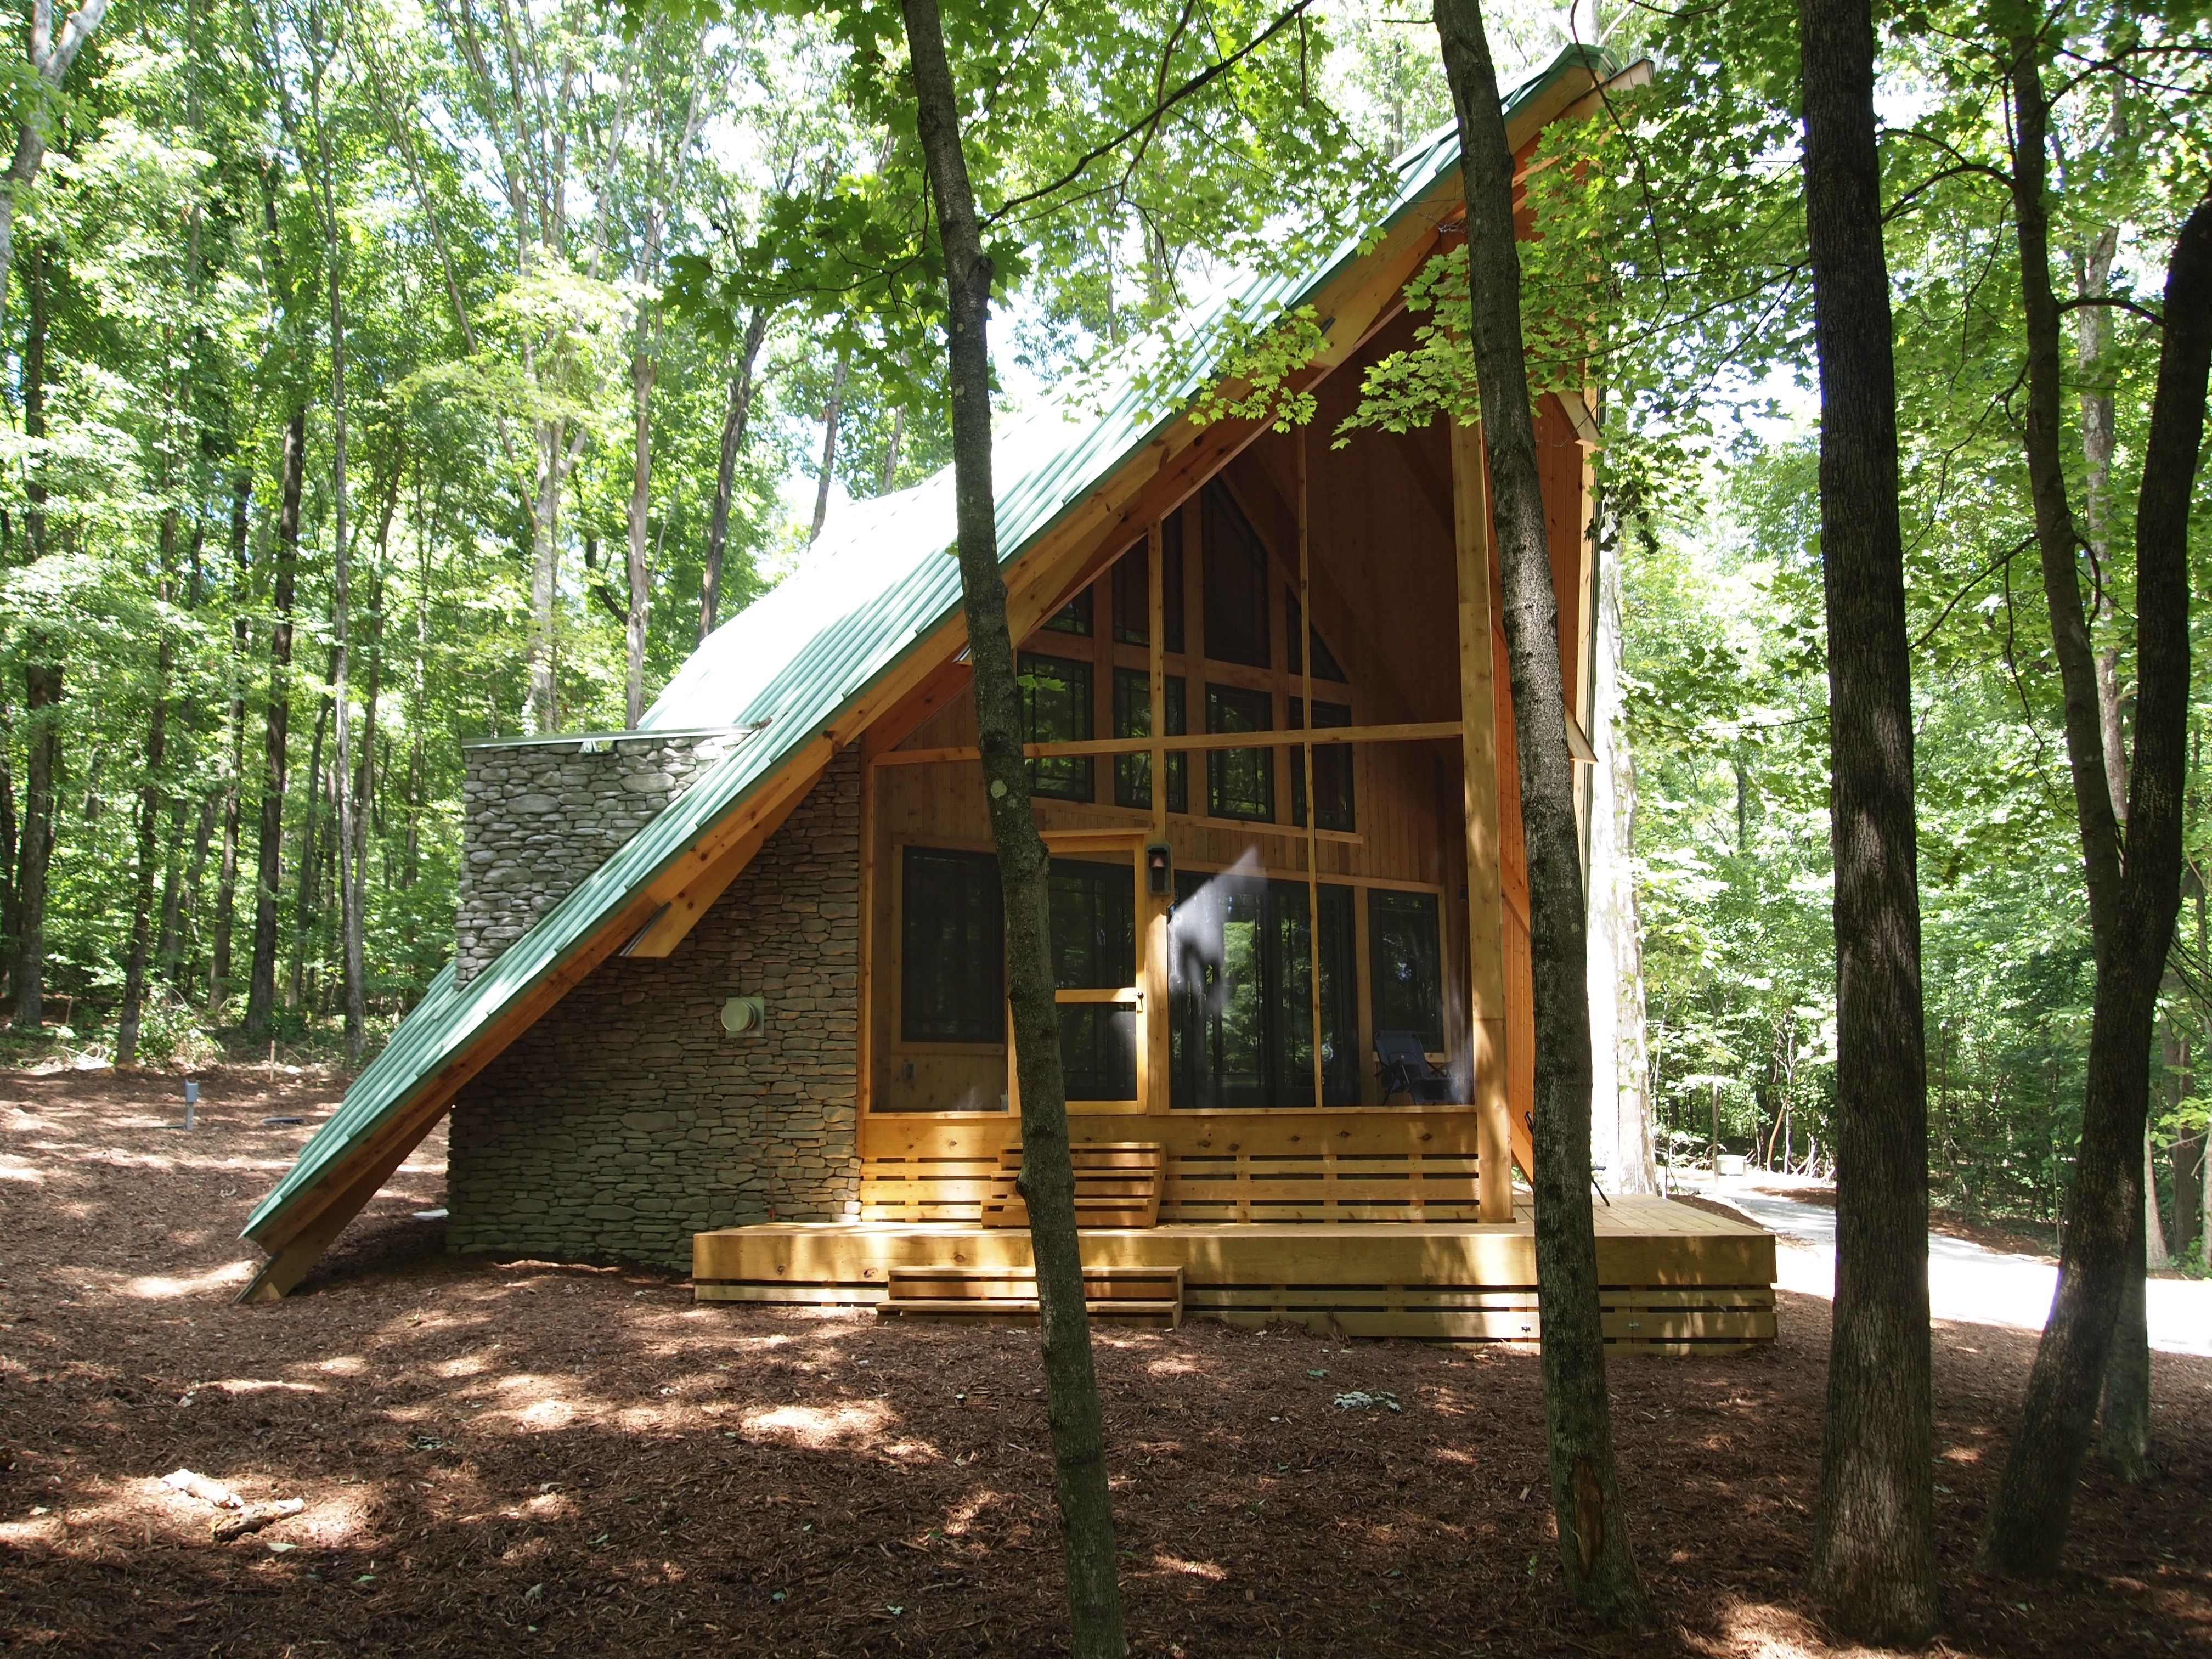 Living Large Reveals A Unique Tiny House In The Woods